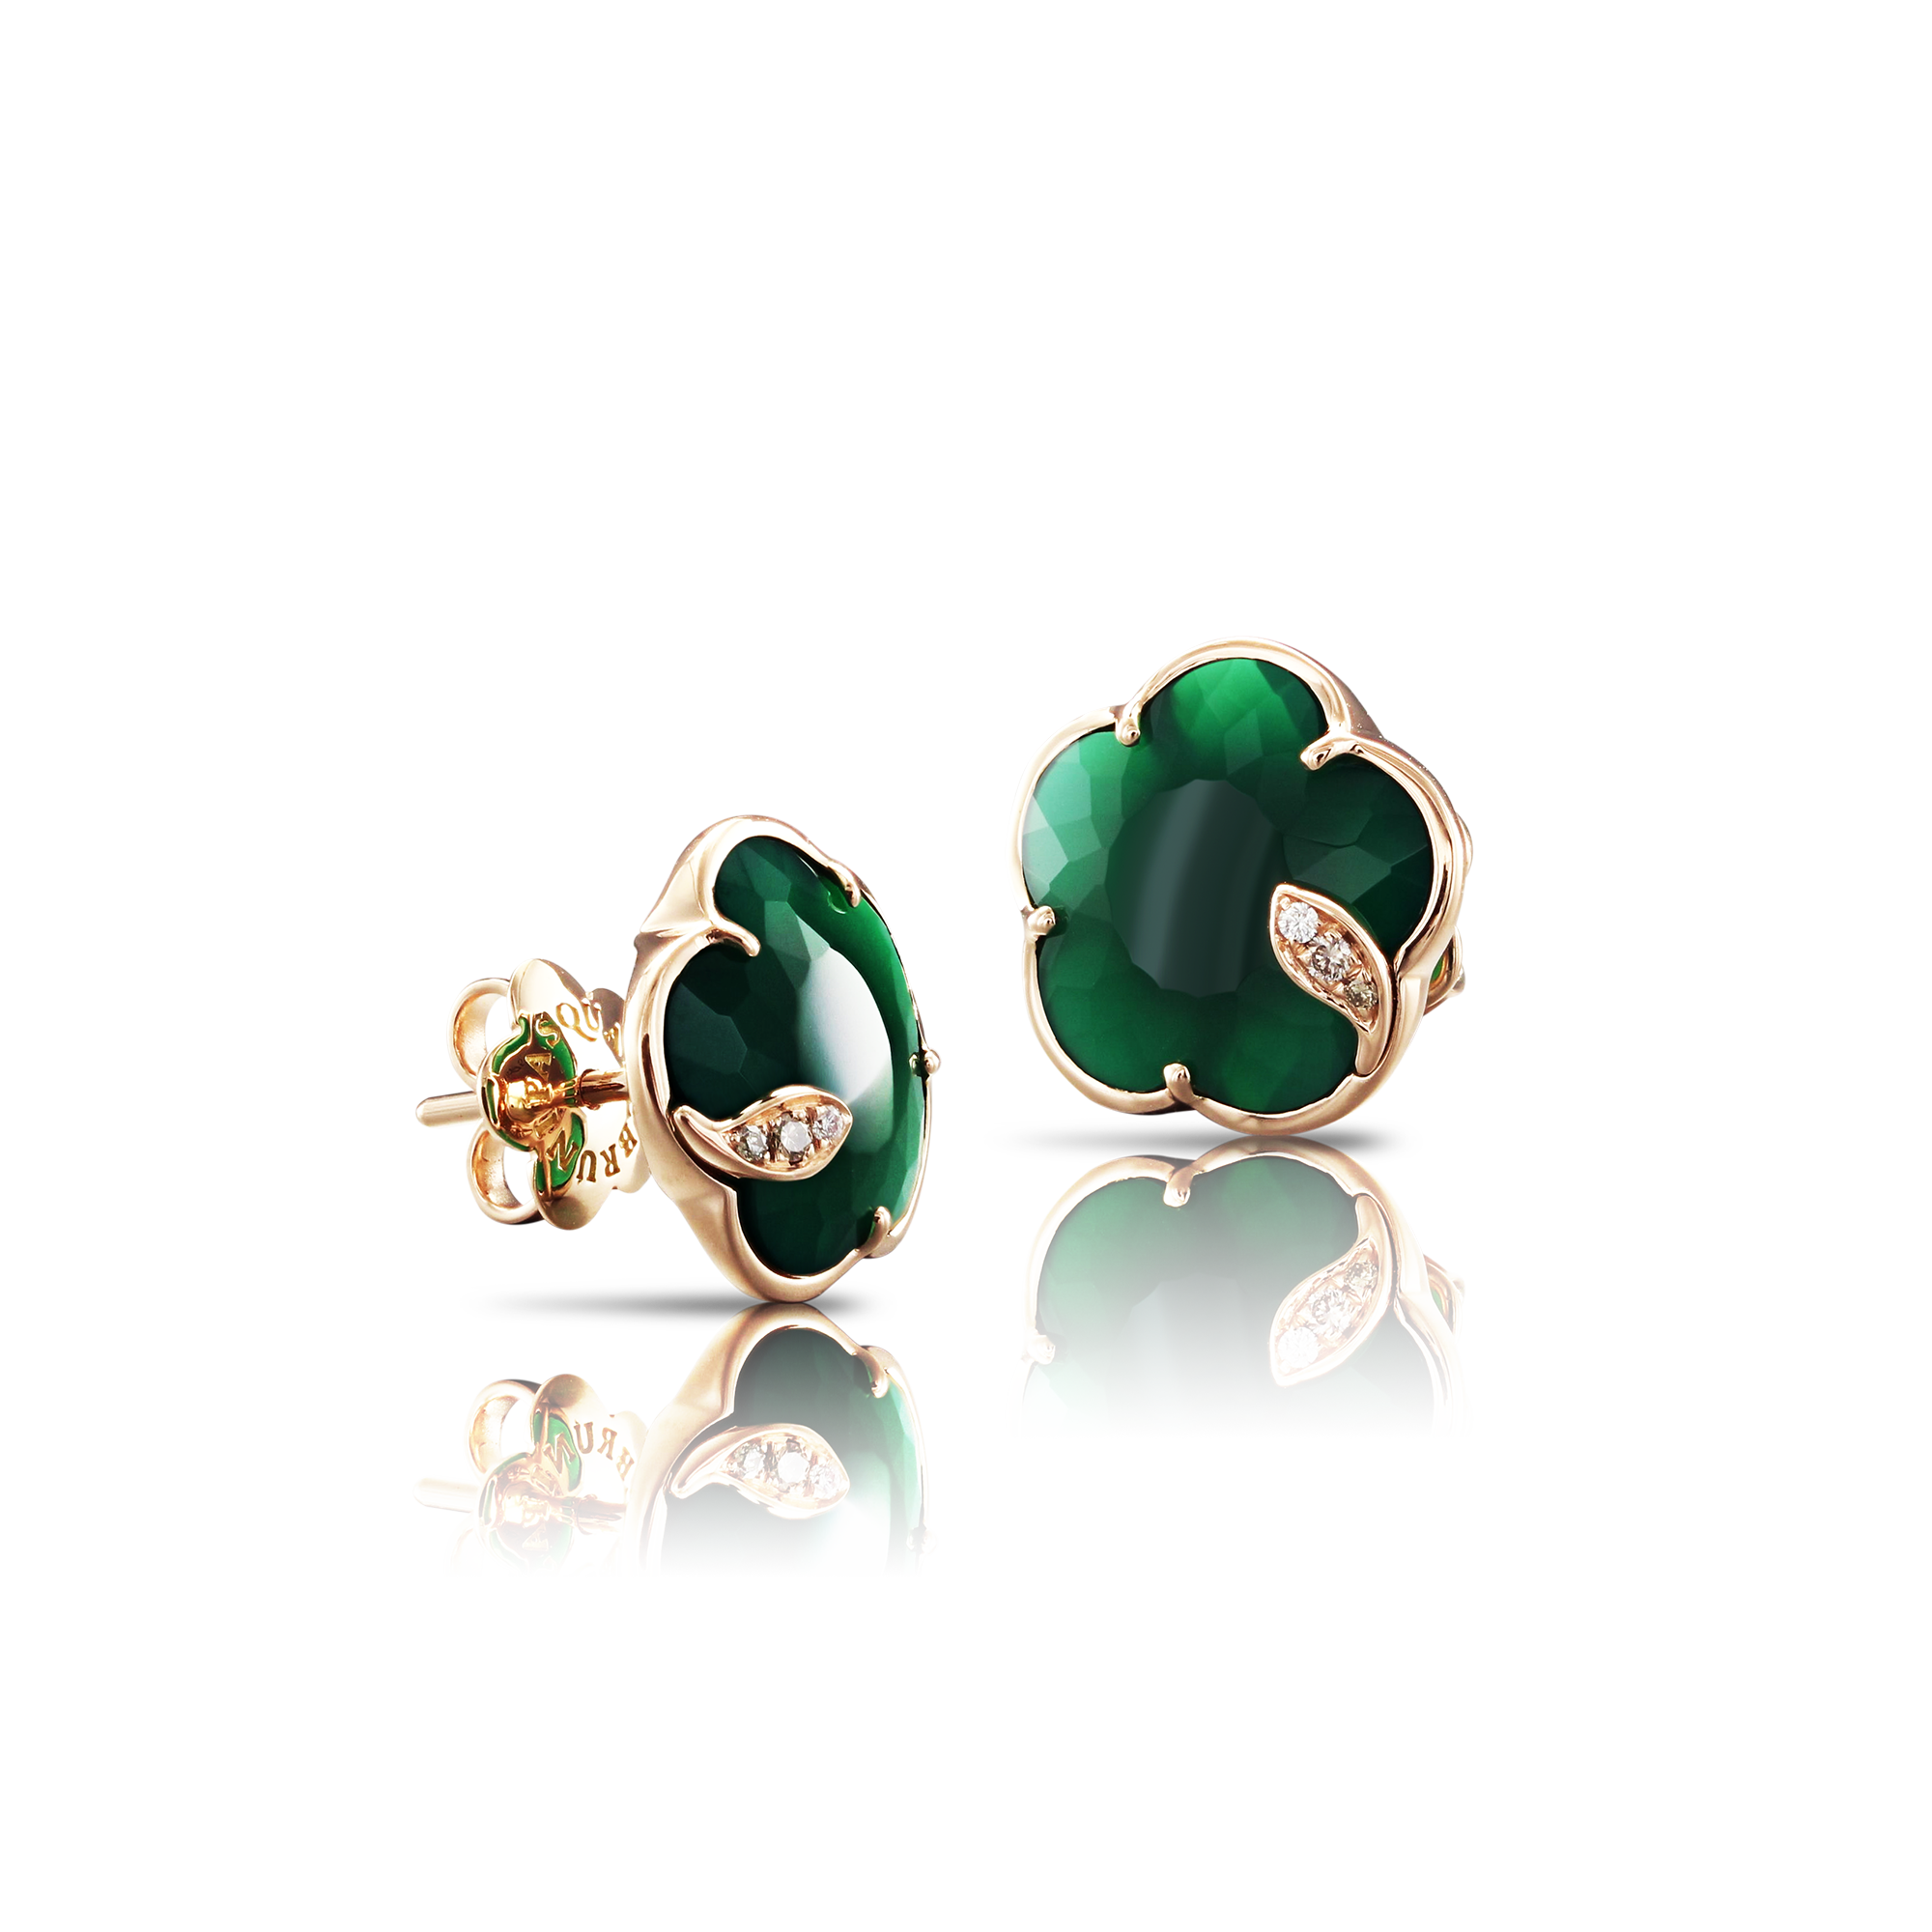 NEW 18k Rose Gold Petit Joli Earrings with Green Agate, White and Champagne Diamonds